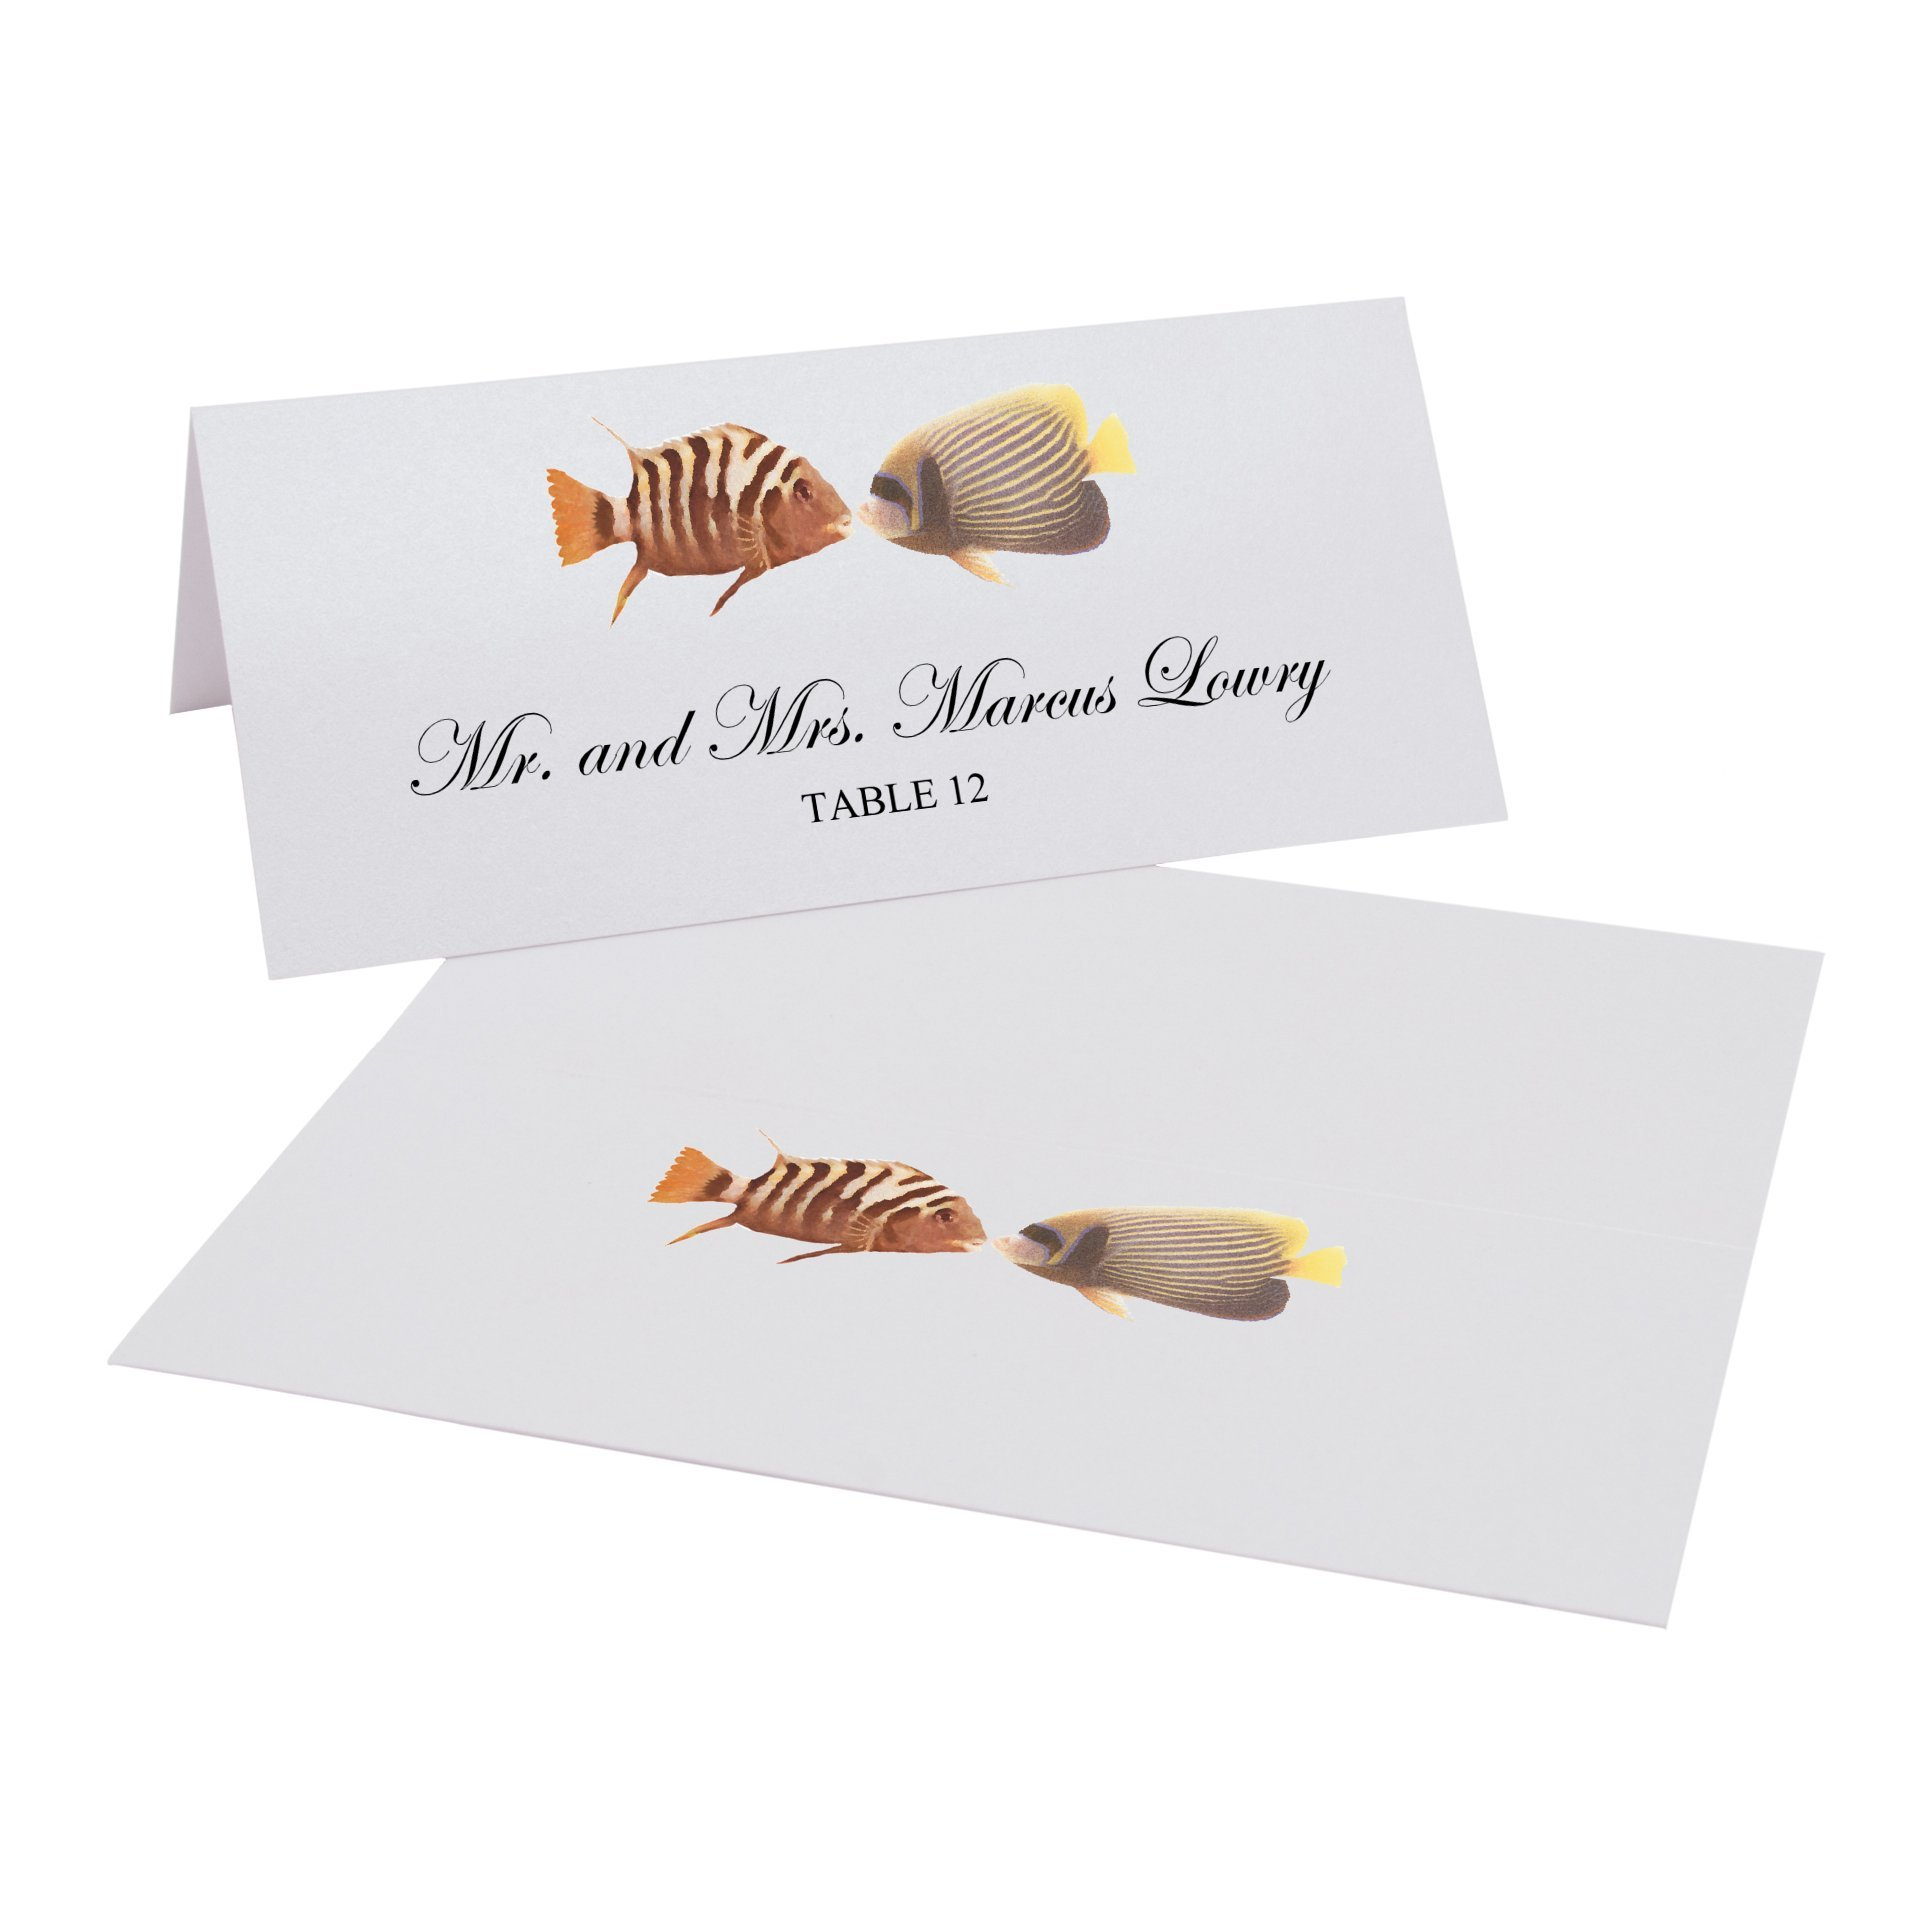 Kissing Fish Easy Print Place Cards, Pearl White, Set of 400 (100 Sheets) by Documents and Designs